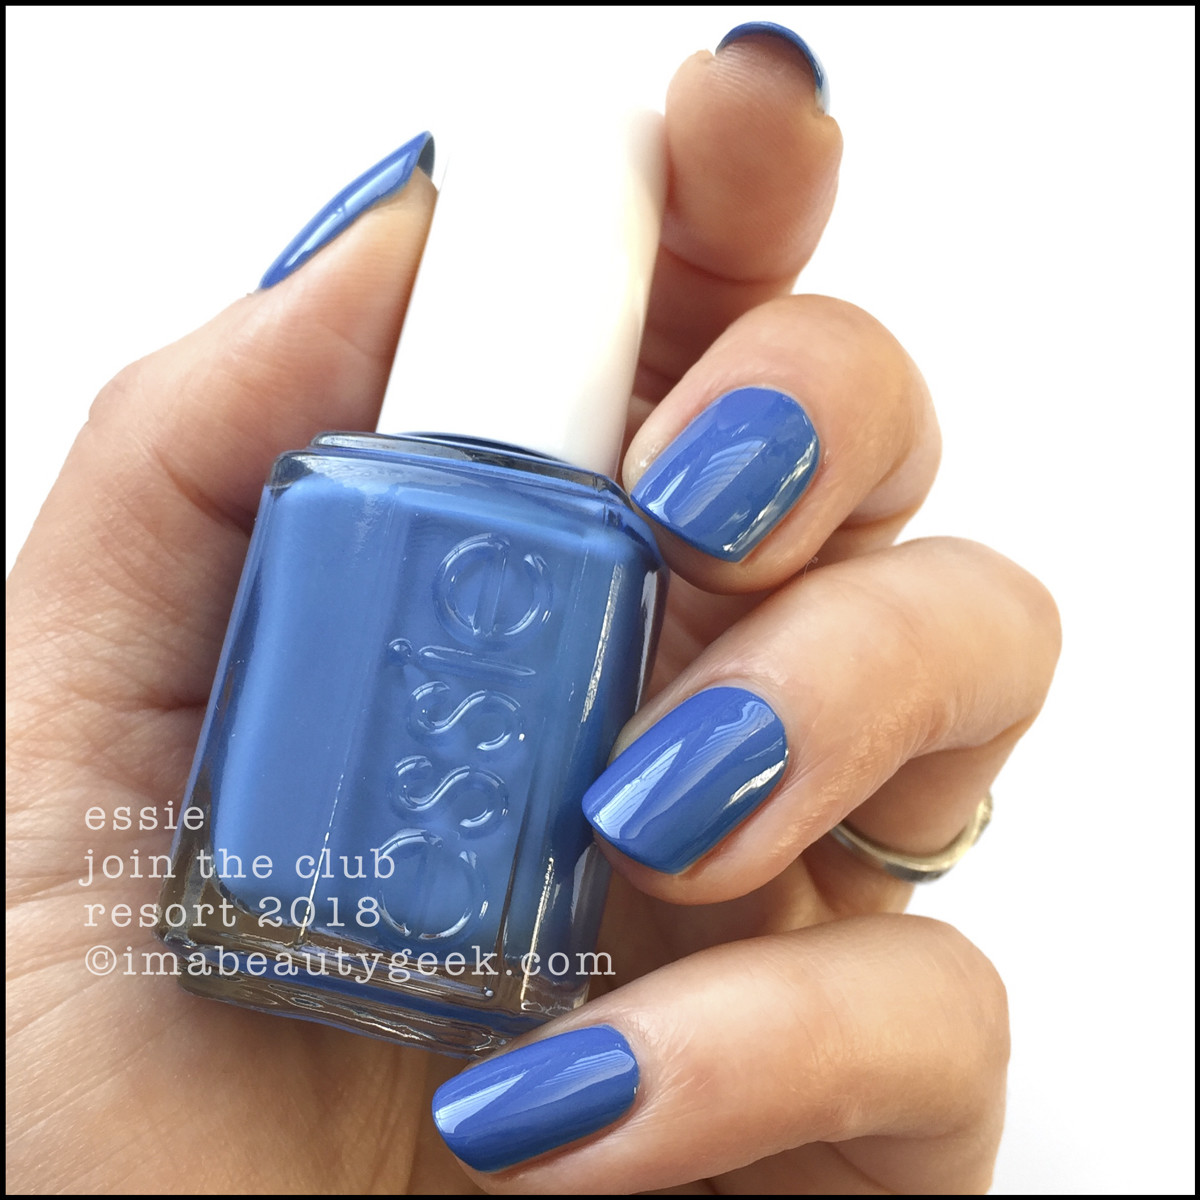 Essie Join the Club - Essie Resort 2018 Swatches Review